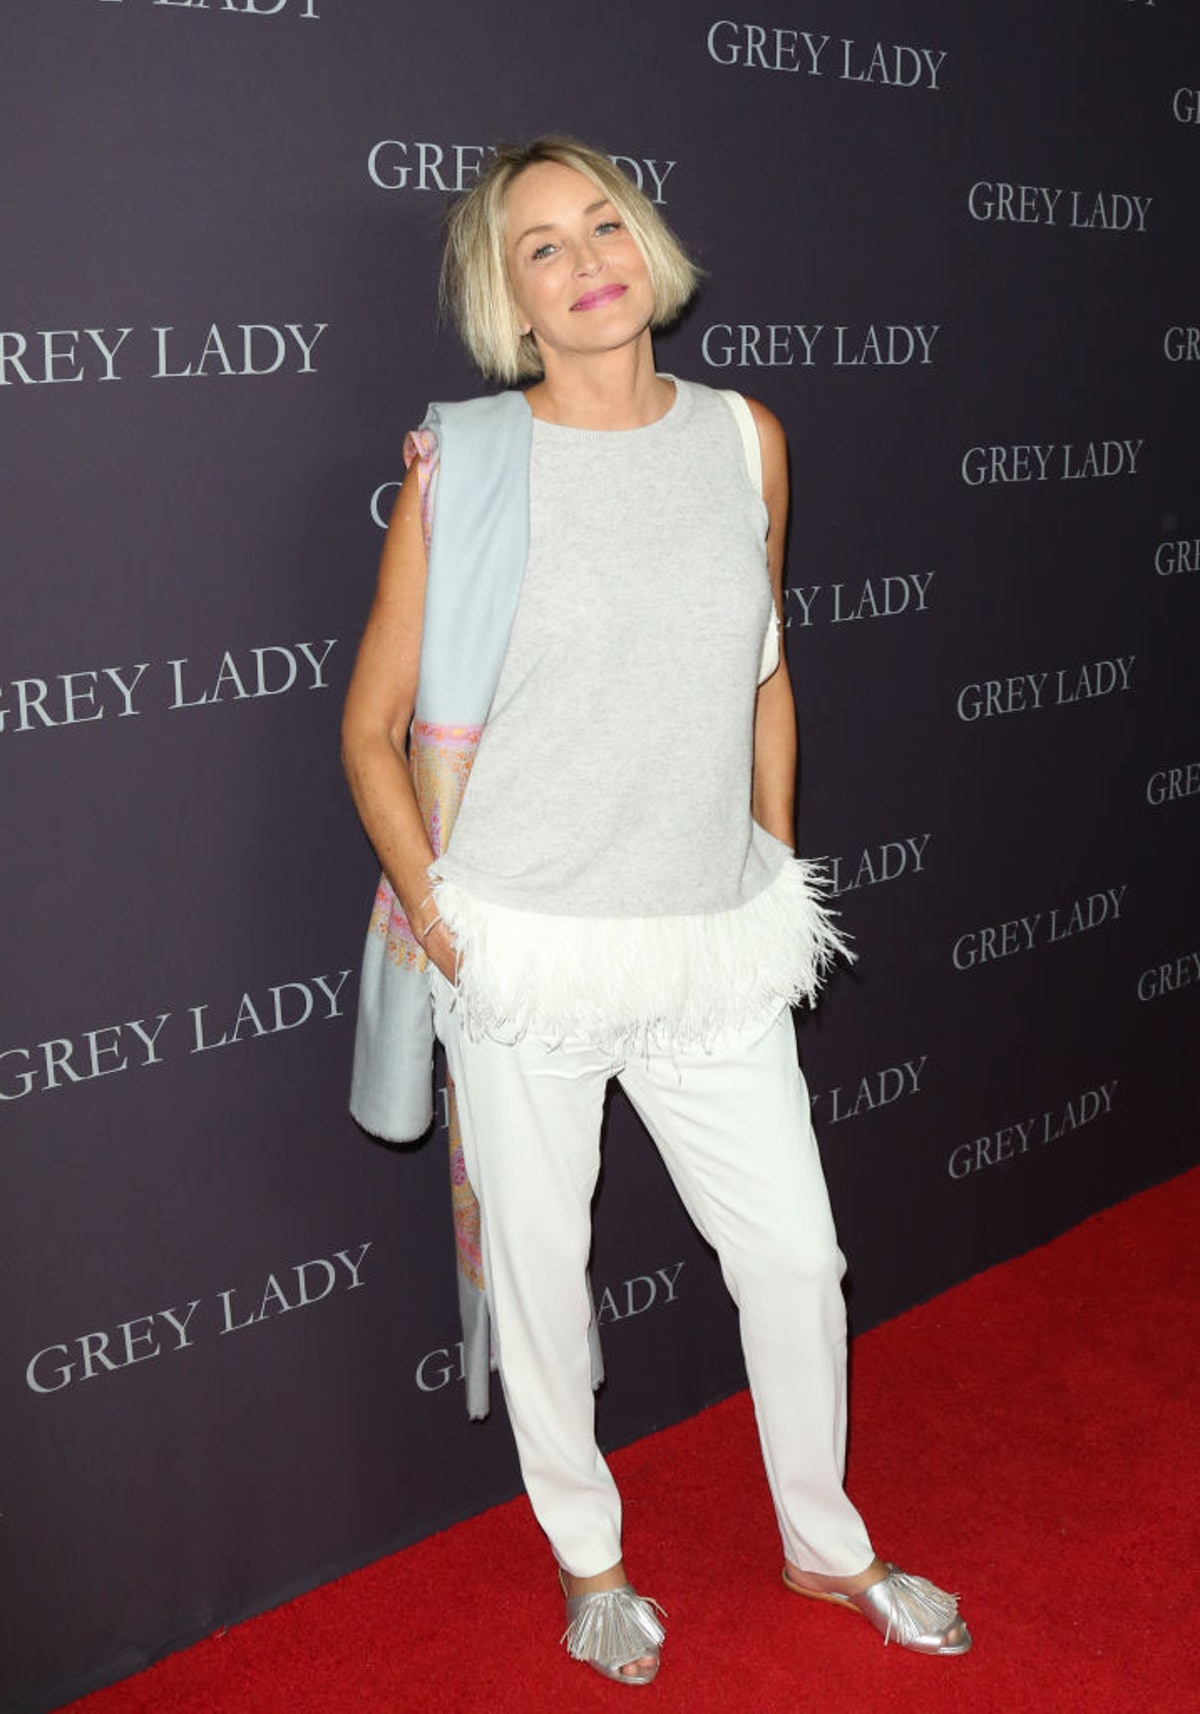 """Premiere Of Pataphysical Production's """"Grey Lady"""" - Arrivals"""